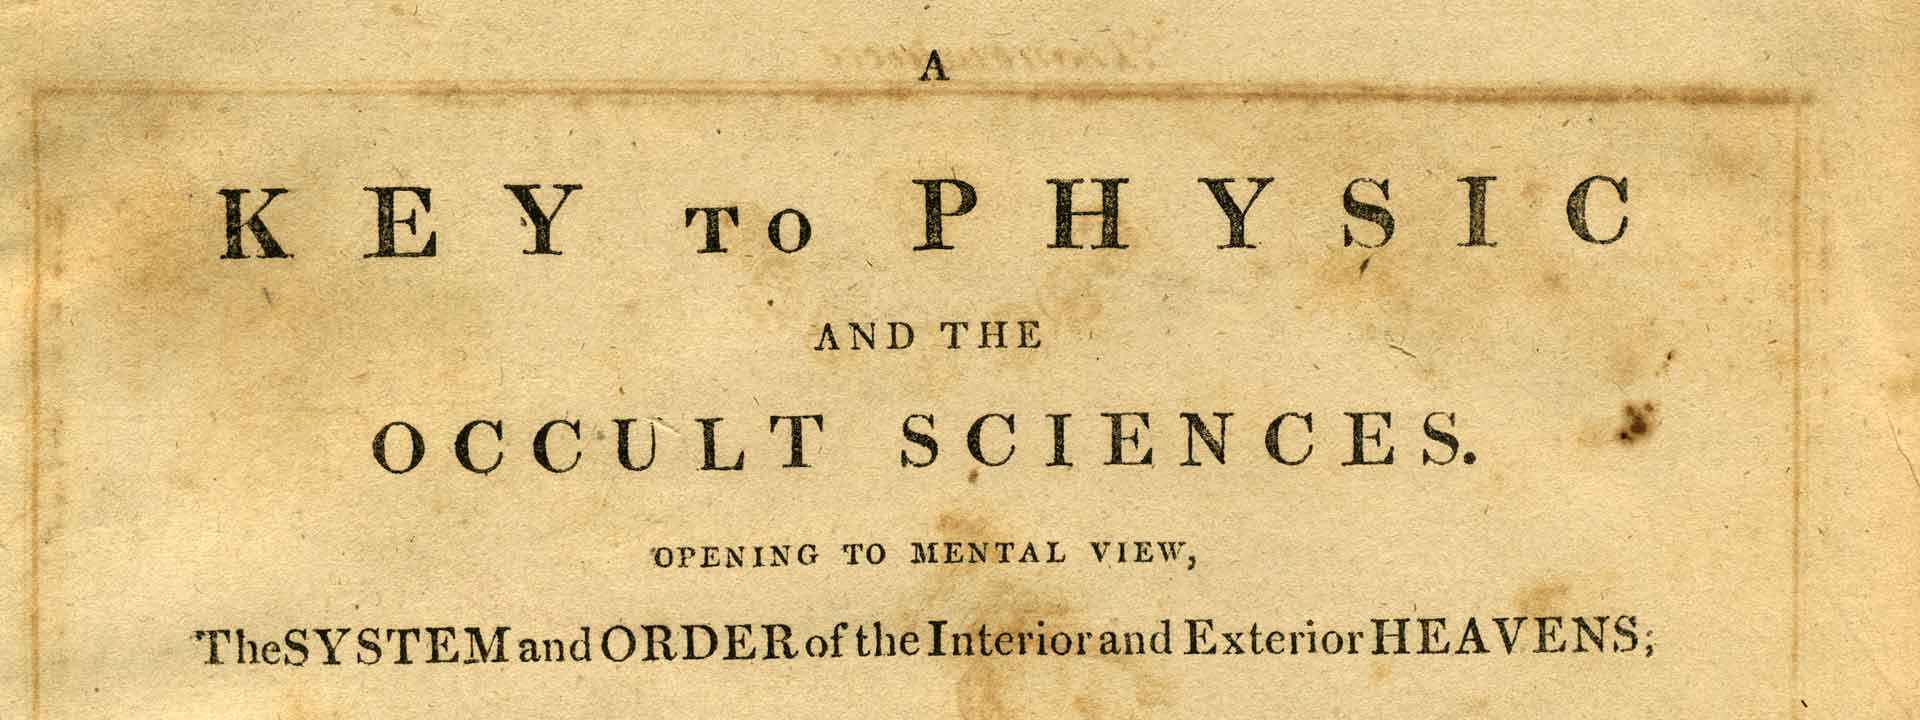 A Key to Physic and The Occult Sciences by E  Sibly (Sibley)